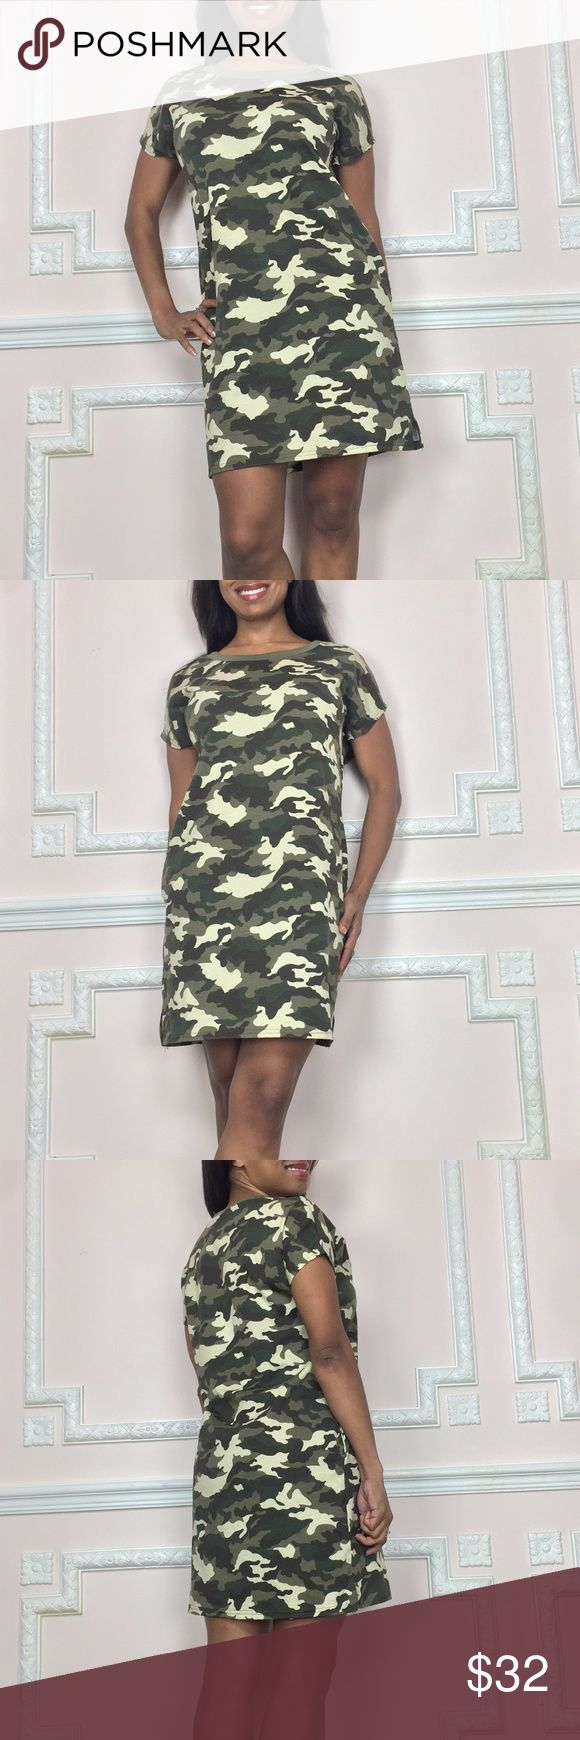 NEW cute camo tee shirt dress FOLLOW my closet- New styles DAILY! Color: Olive Green, Green, Beige, Black  Fabric:Polyester Blend  Length:Approximately 25 inches from underarm to bottom hem  Size Small is designed to fit sizes 2;3; or 4 Ssgc51 From SEXYSNOB.com ! SexySnob.com Dresses Mini